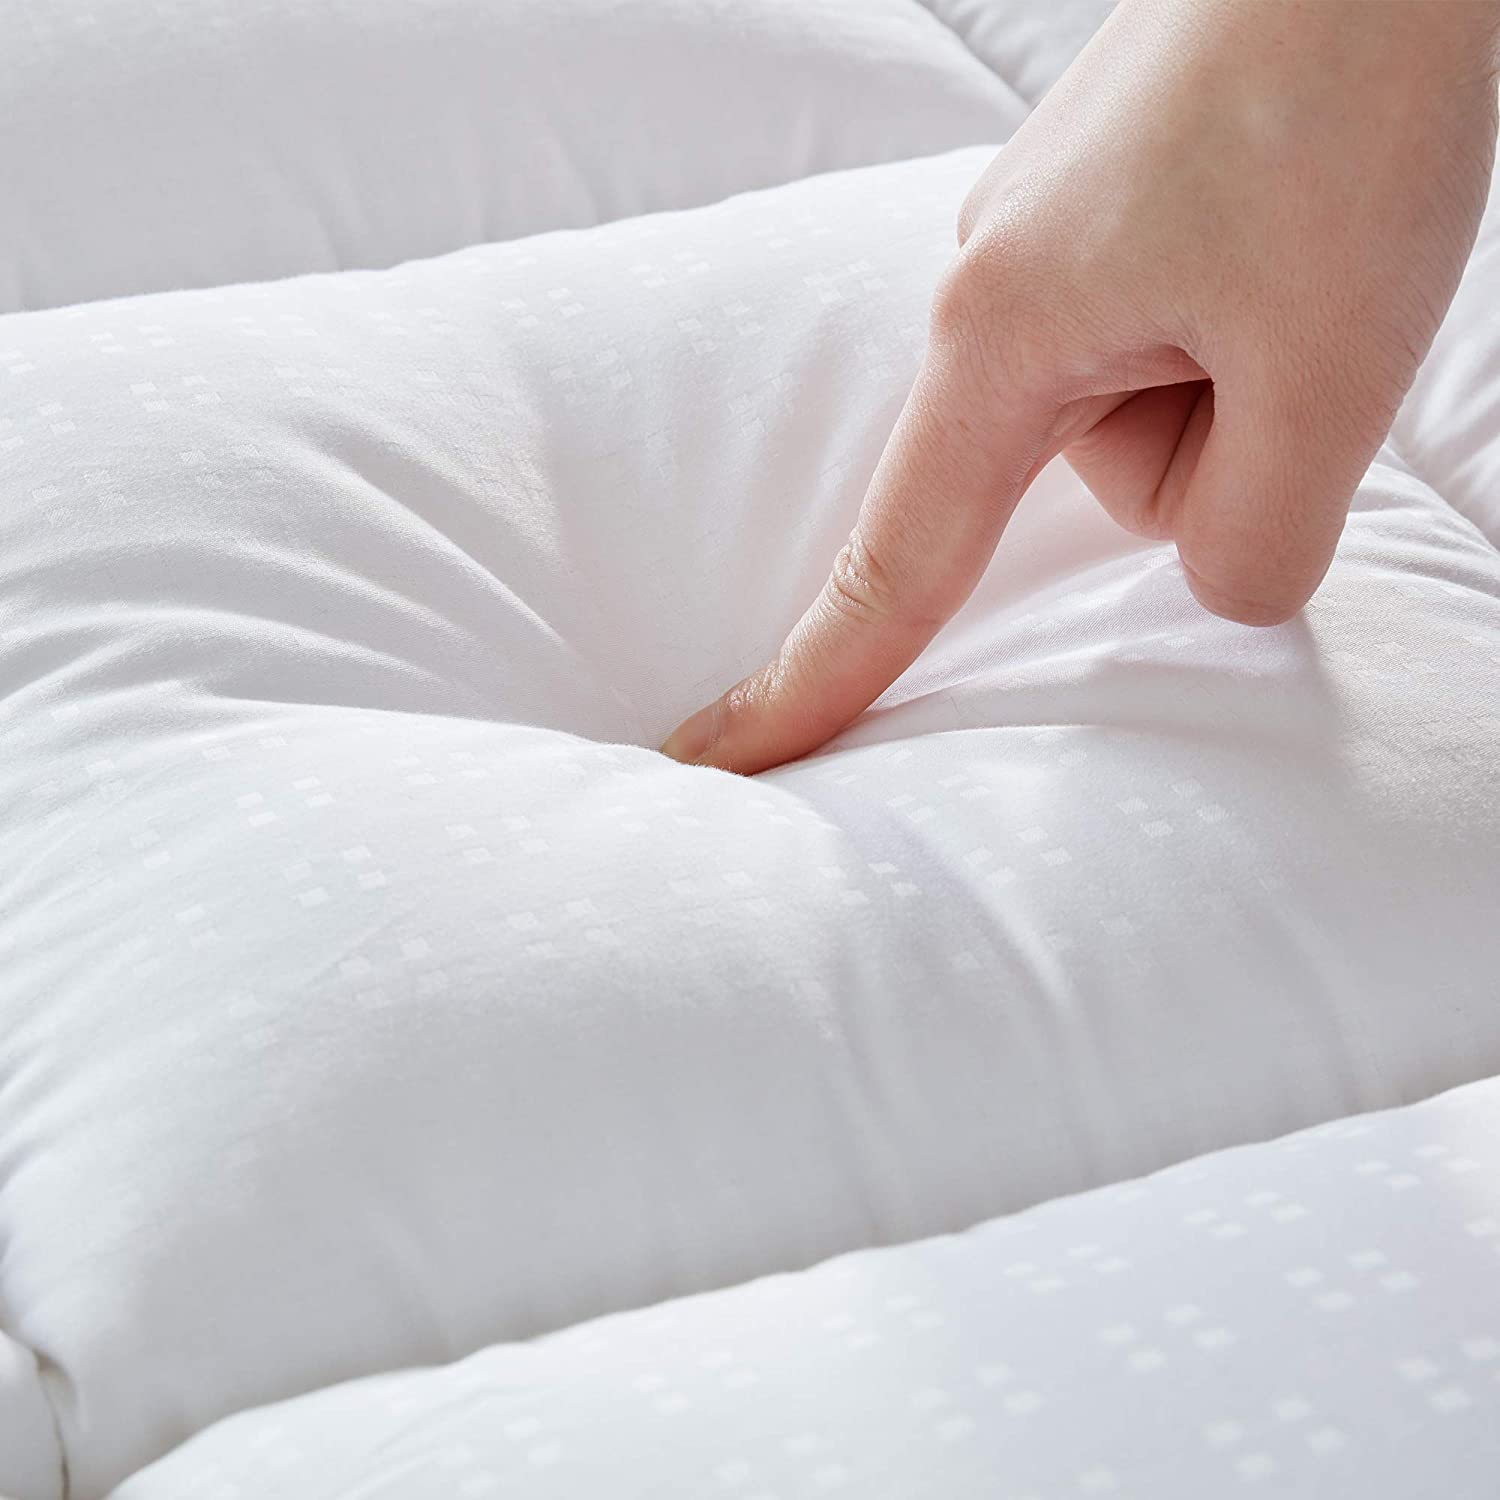 SLEEP ZONE Luxury Mattress Pad Cover Cooling Cotton Top Overfilled Extra Thick Soft Down Alternative Topper Quilted Pillow Top Upto 21 inch Deep Pocket, White, Queen